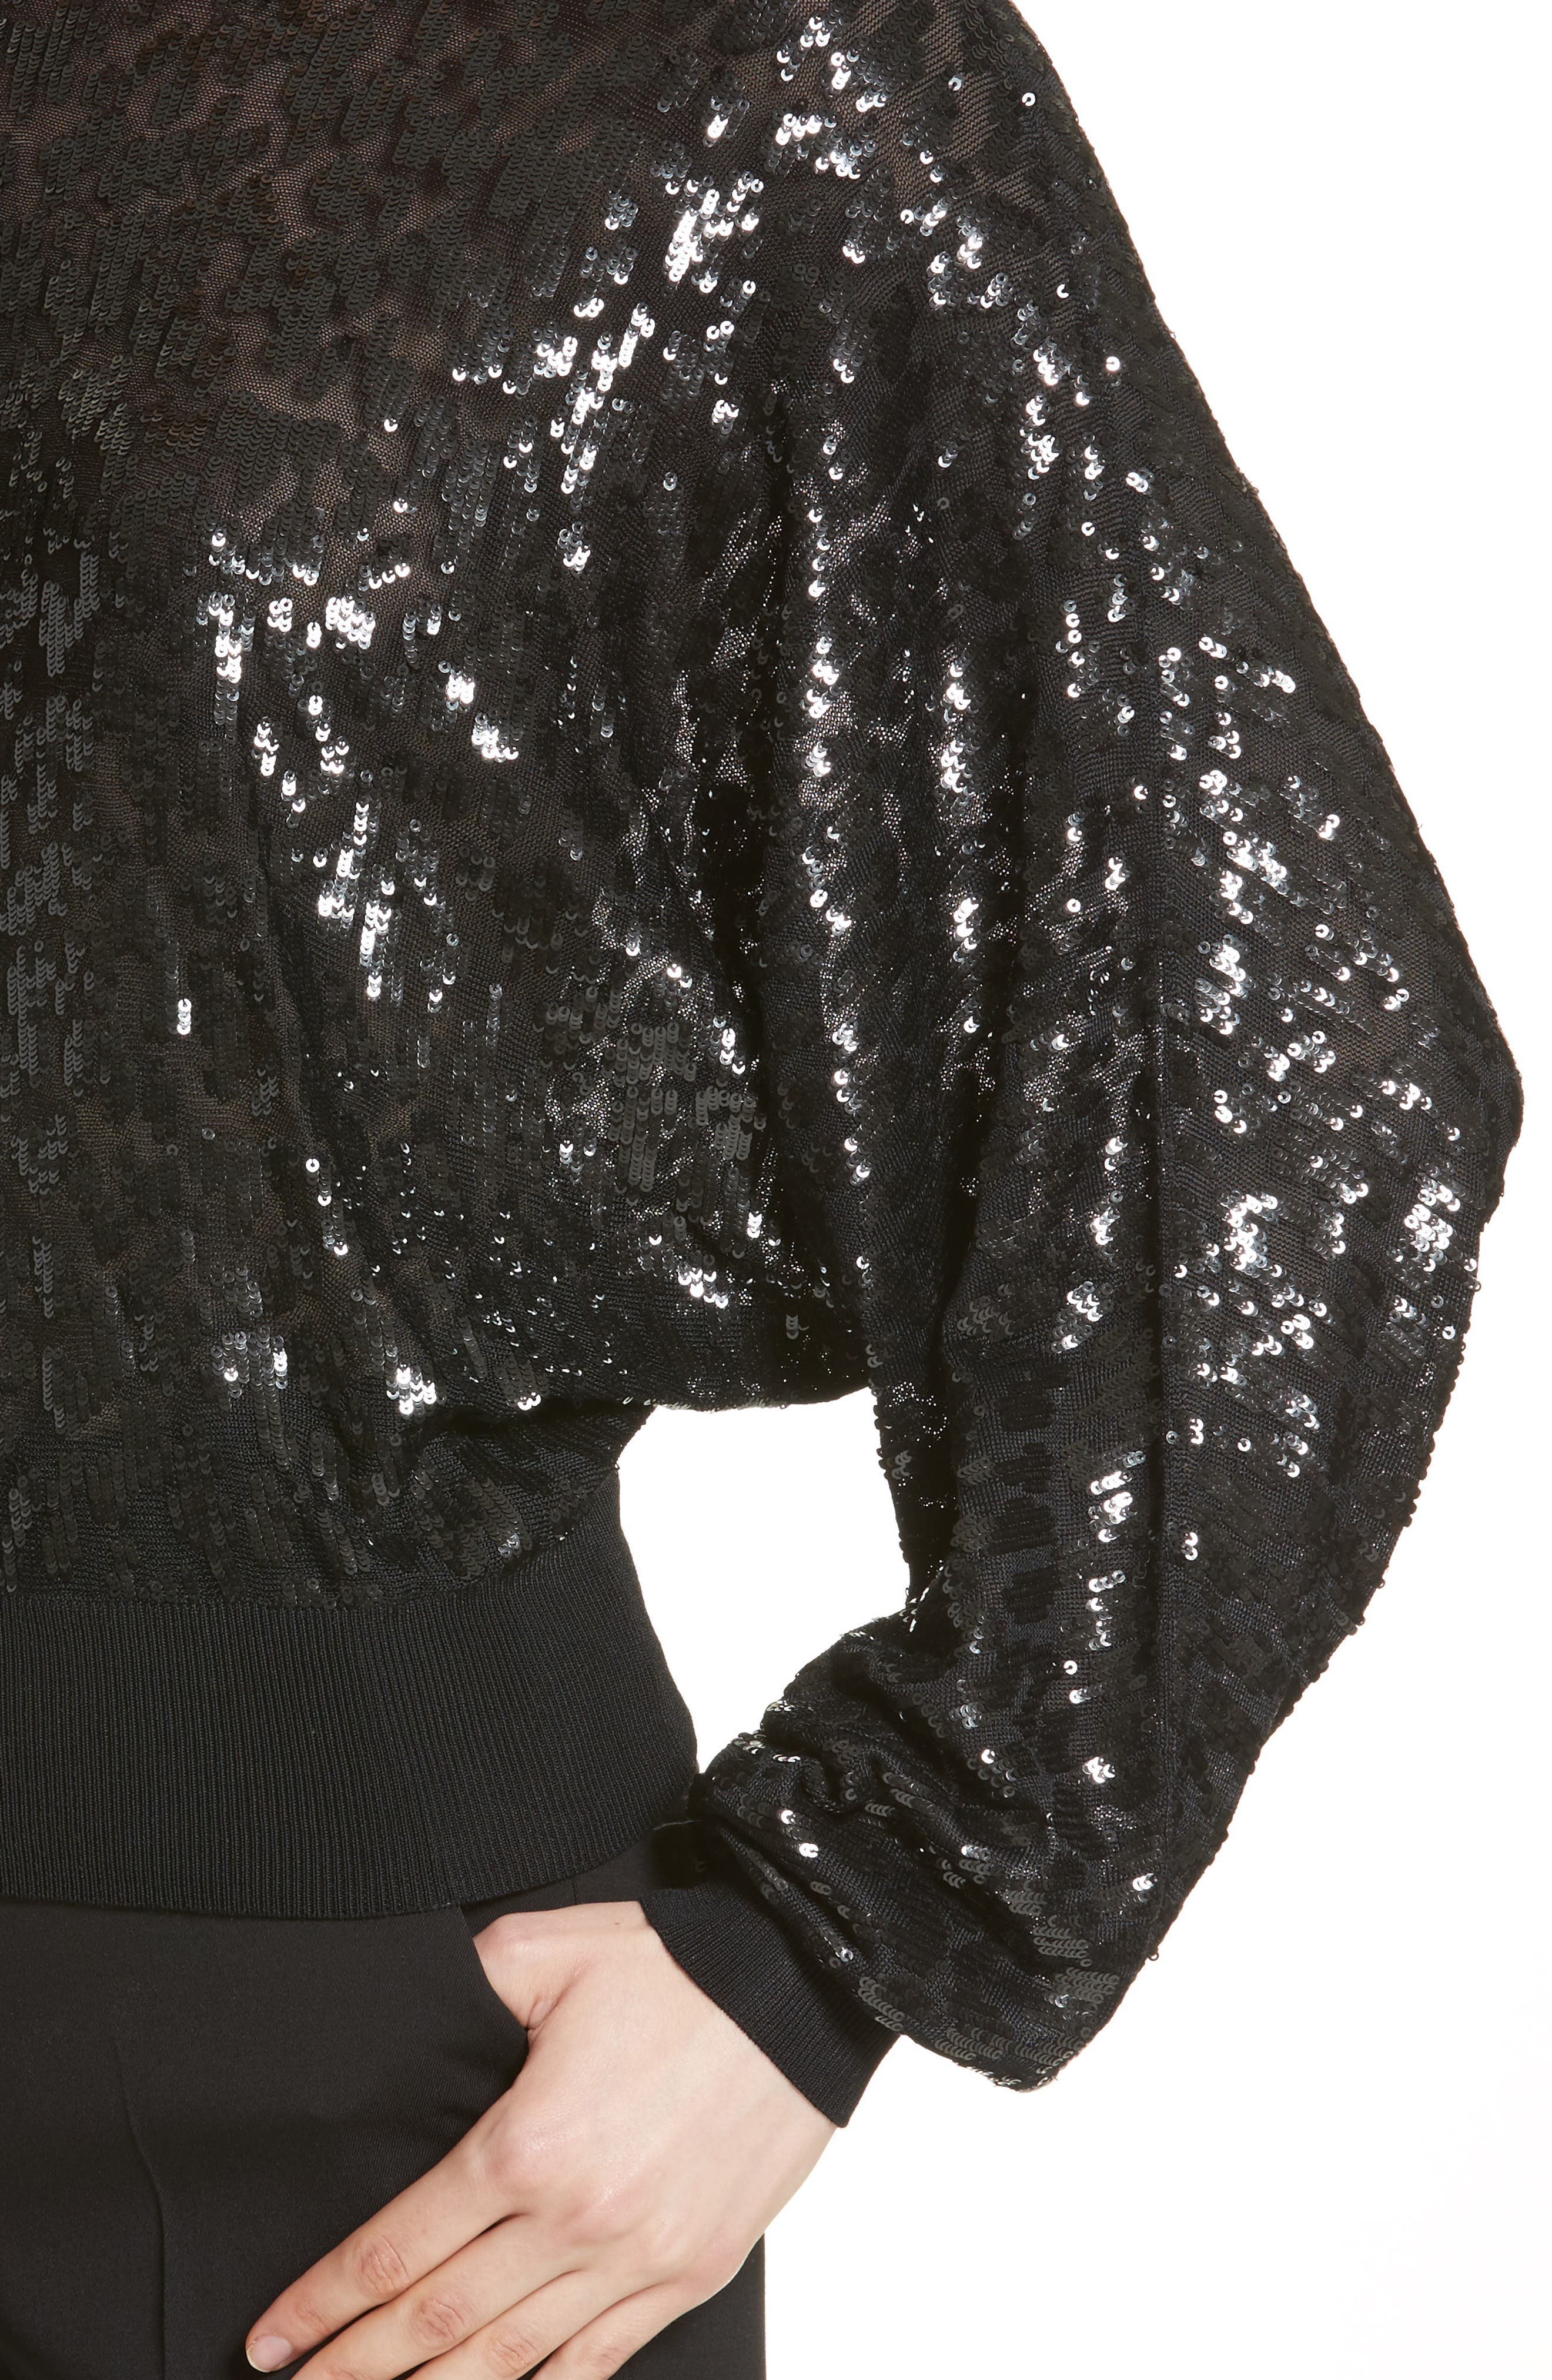 Sequined Tulle Leopard Sweater,                             Alternate thumbnail 4, color,                             Black/ Black